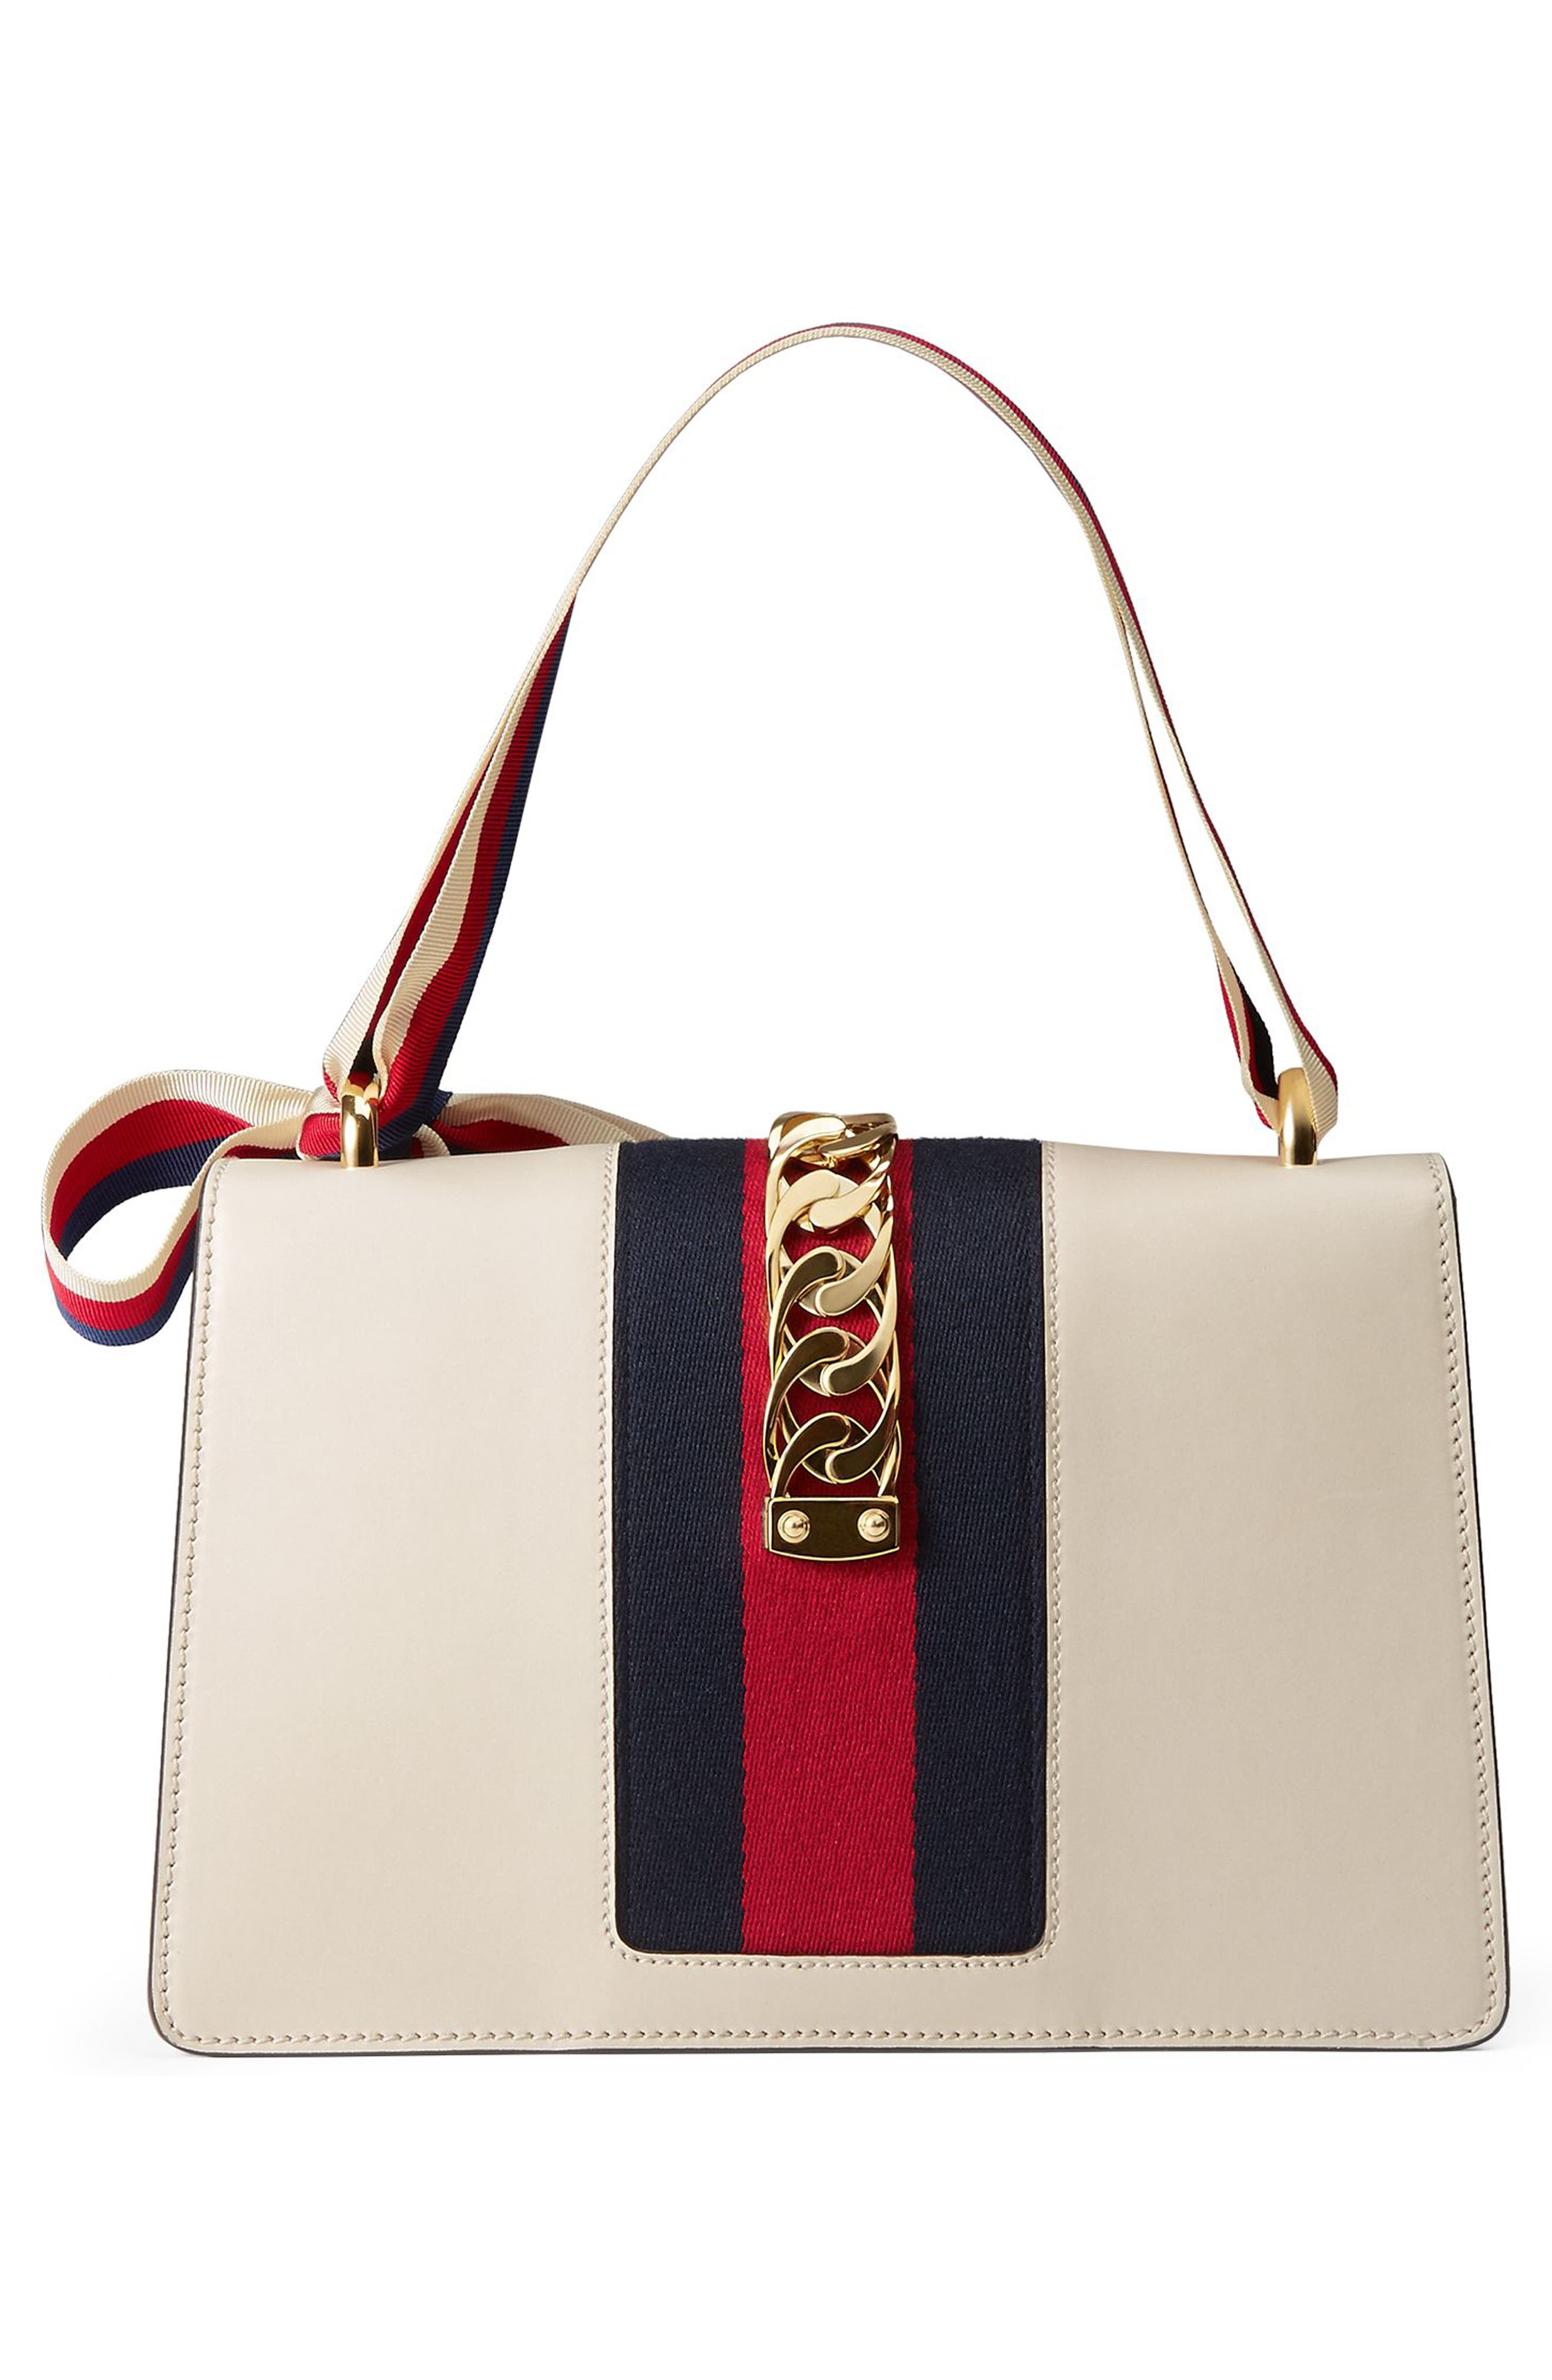 GUCCI, Small Sylvie Leather Shoulder Bag, Alternate thumbnail 2, color, WHITE